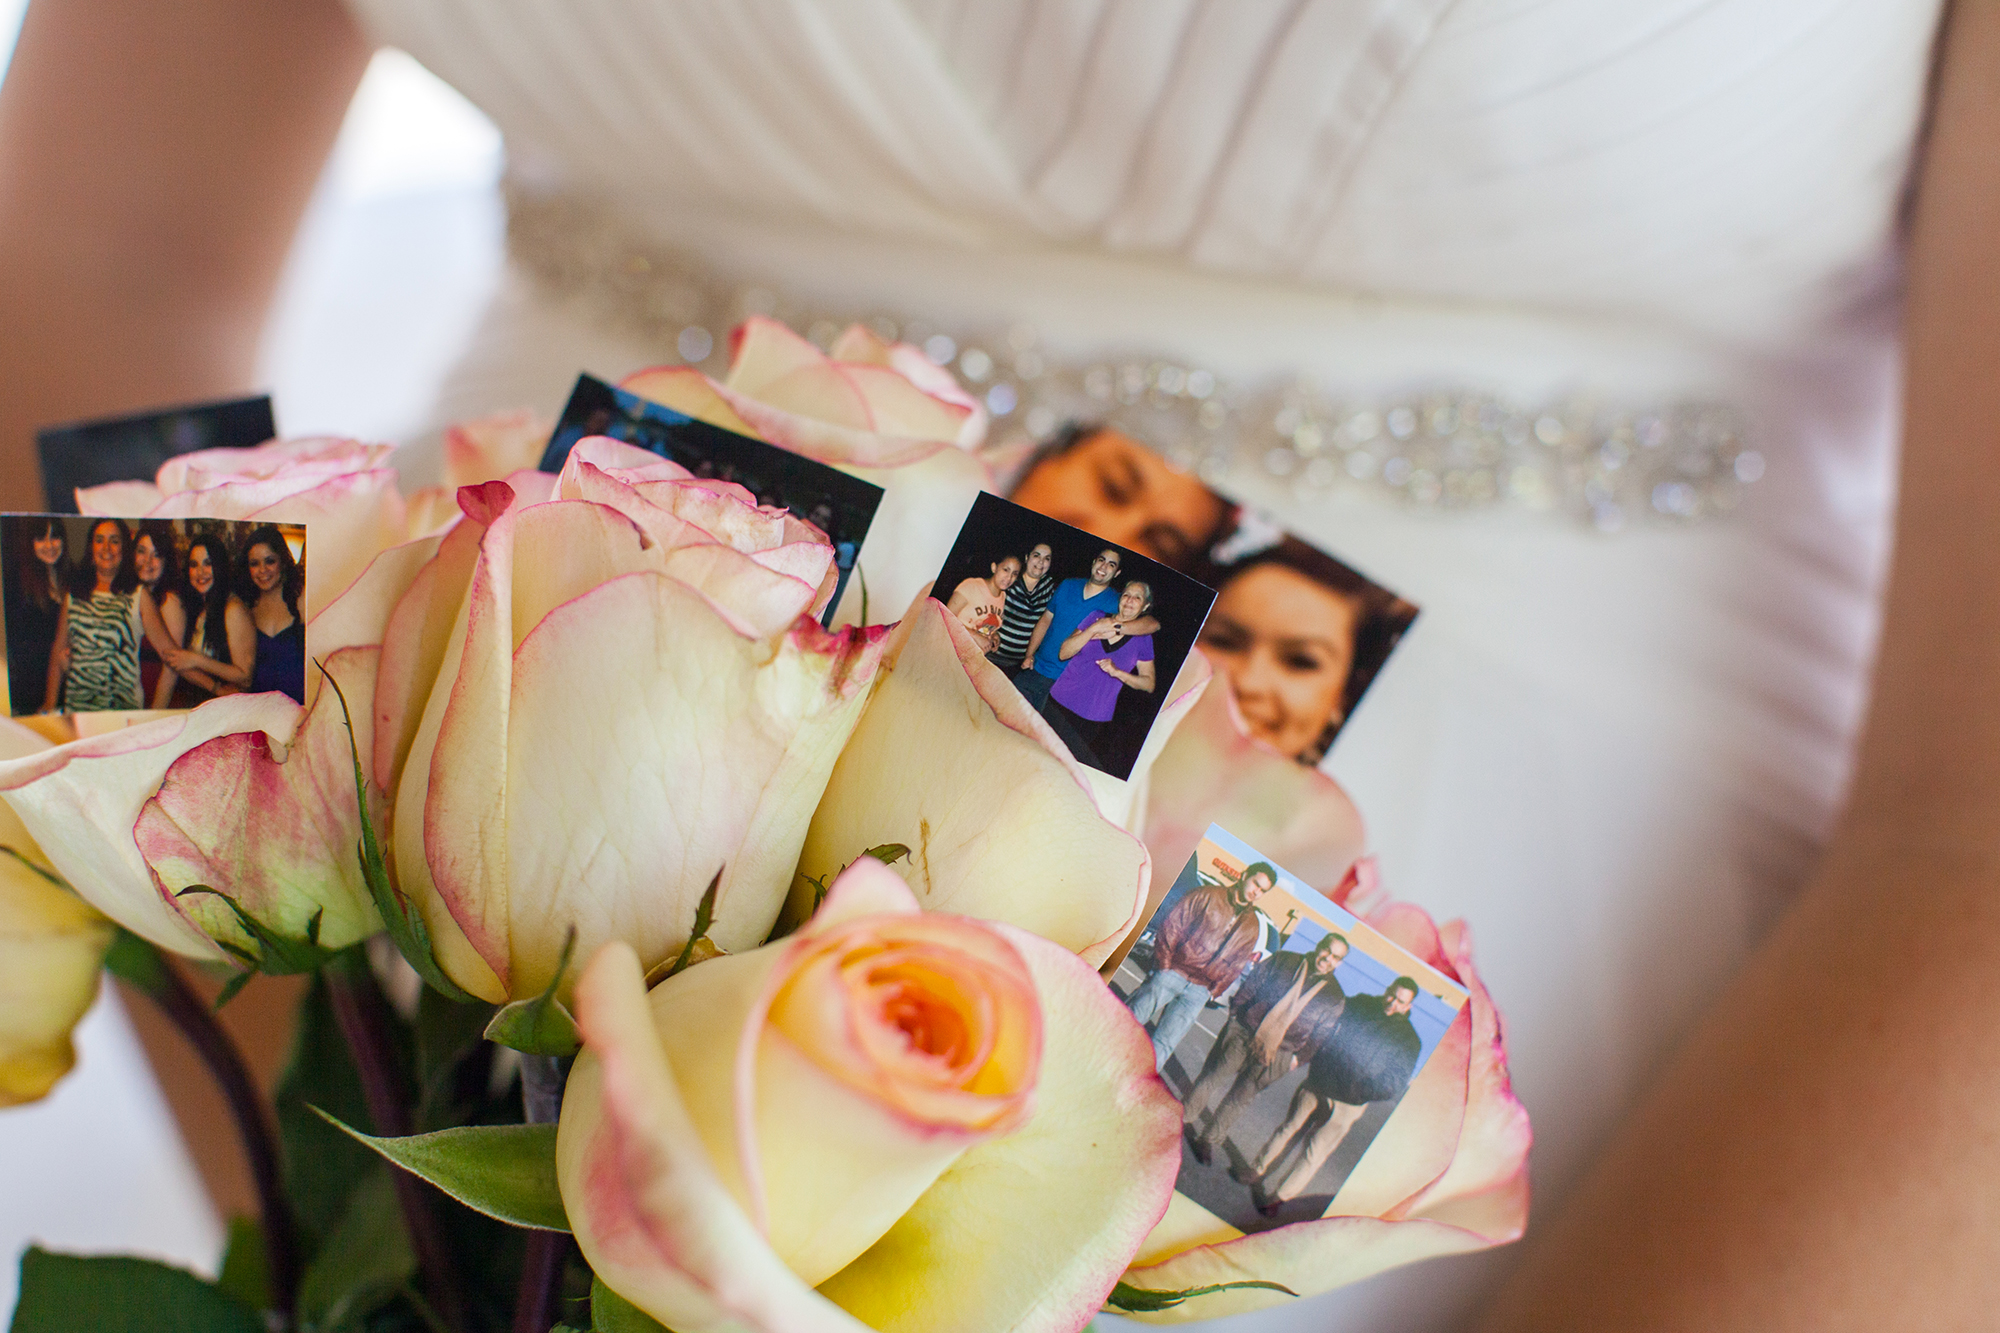 Despite the small party that attended, I thought it was sweet that Leslie had photos of her loved ones as part of her wedding bouquet.